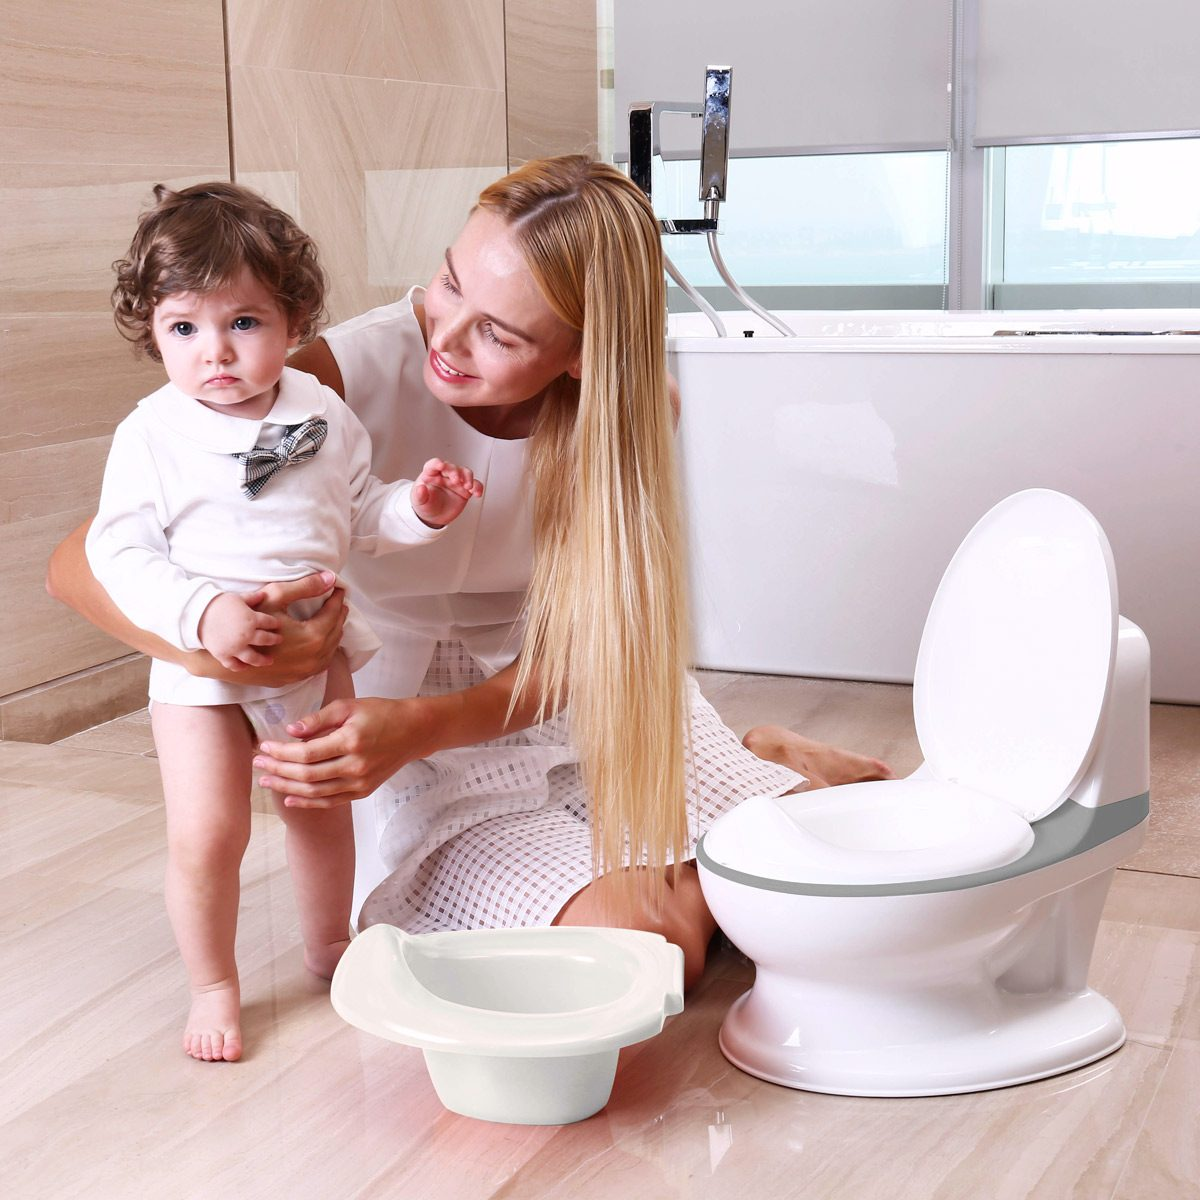 Children will feel more grown up using a potty shaped just like the big toilet